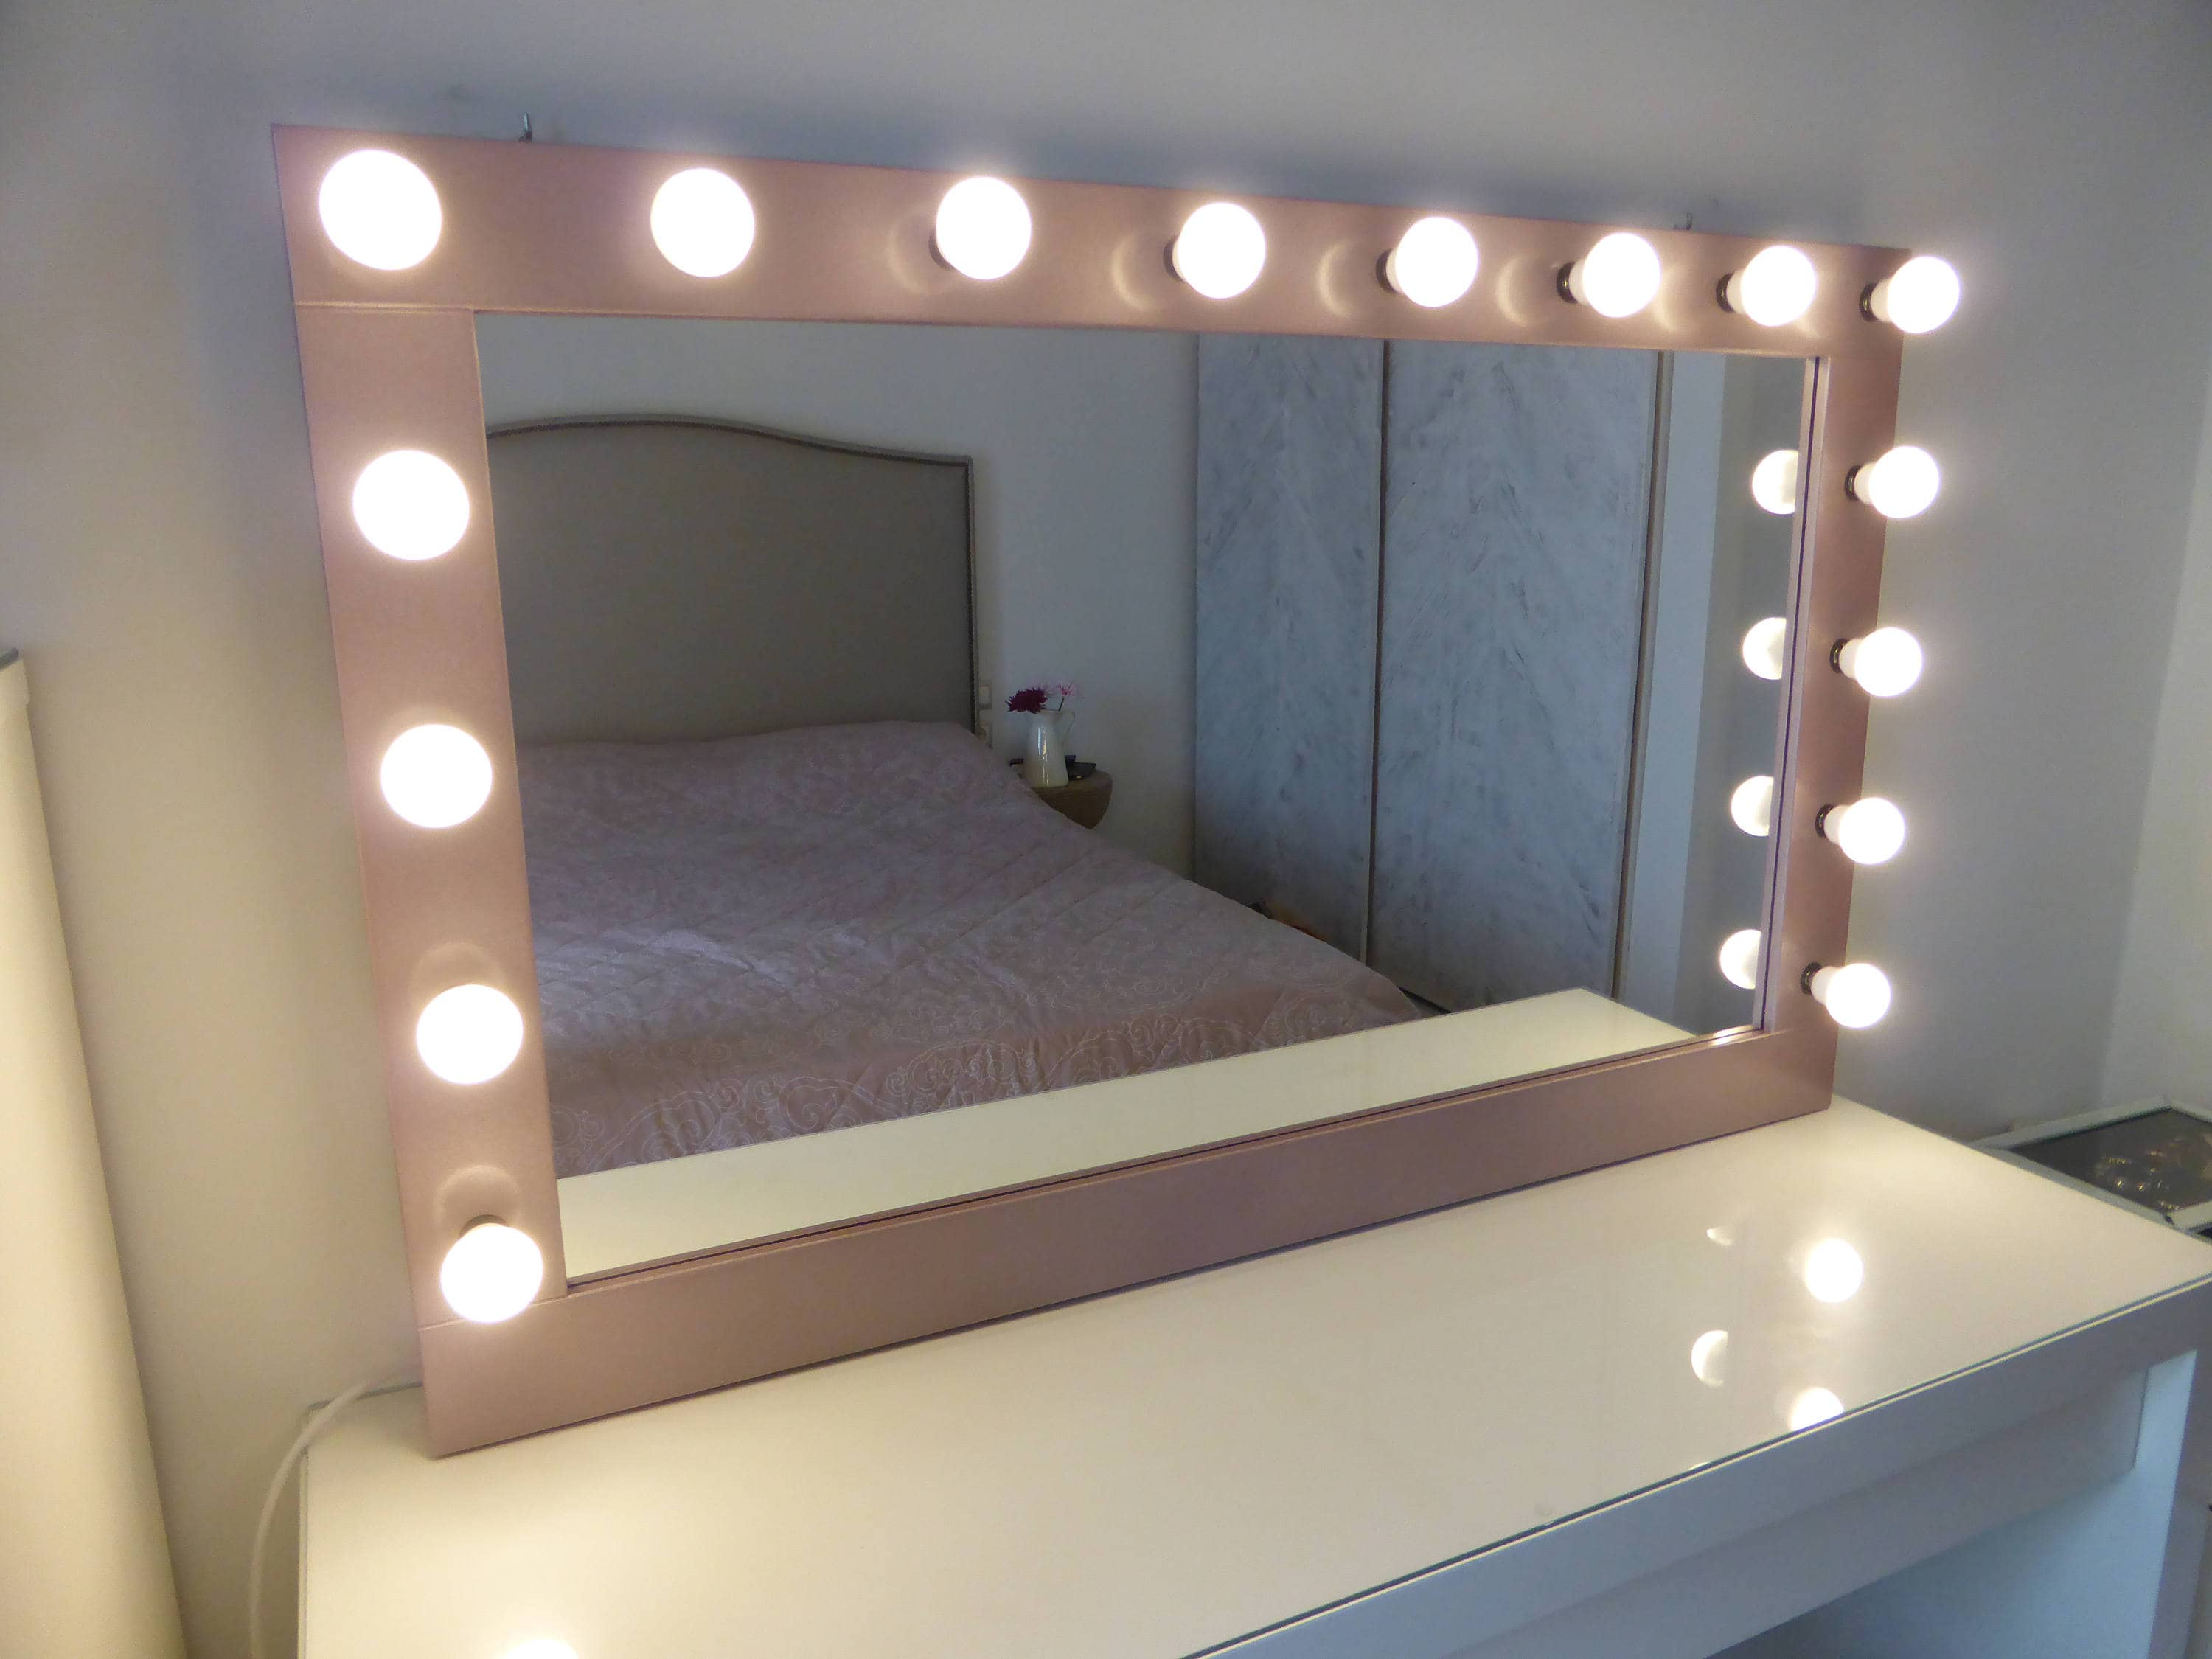 Mirror with lighting Retail 50 Jamminonhaightcom Xl Hollywood Mirror 43 27 Rose Gold Etsy